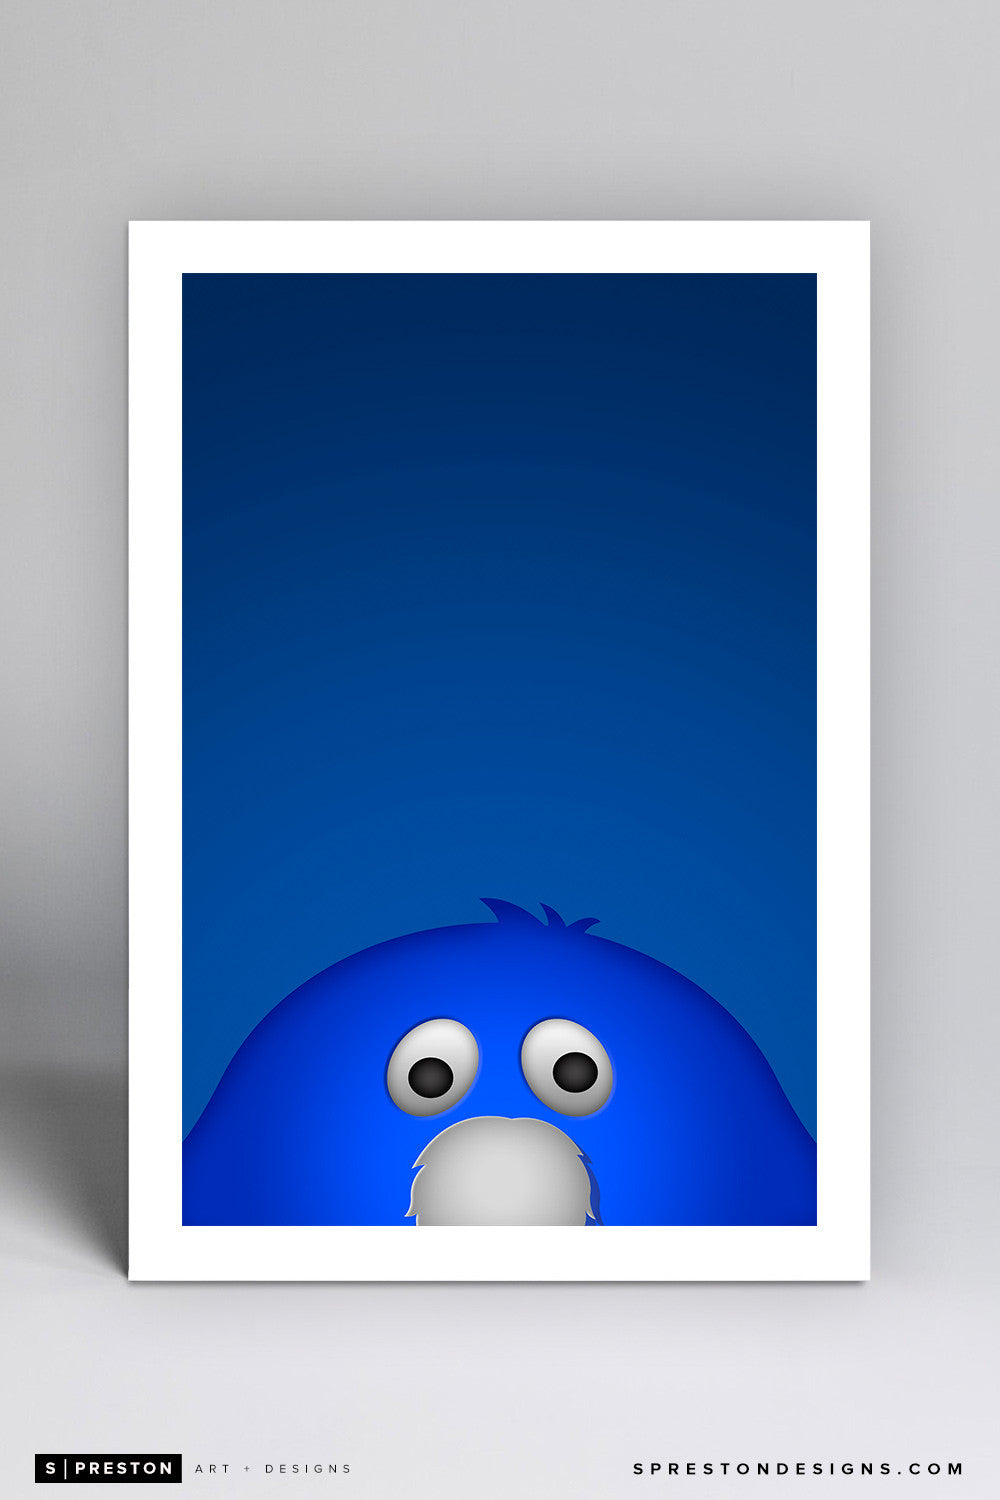 Minimalist Blue Blob Art Print - Xavier University - S. Preston Art + Designs